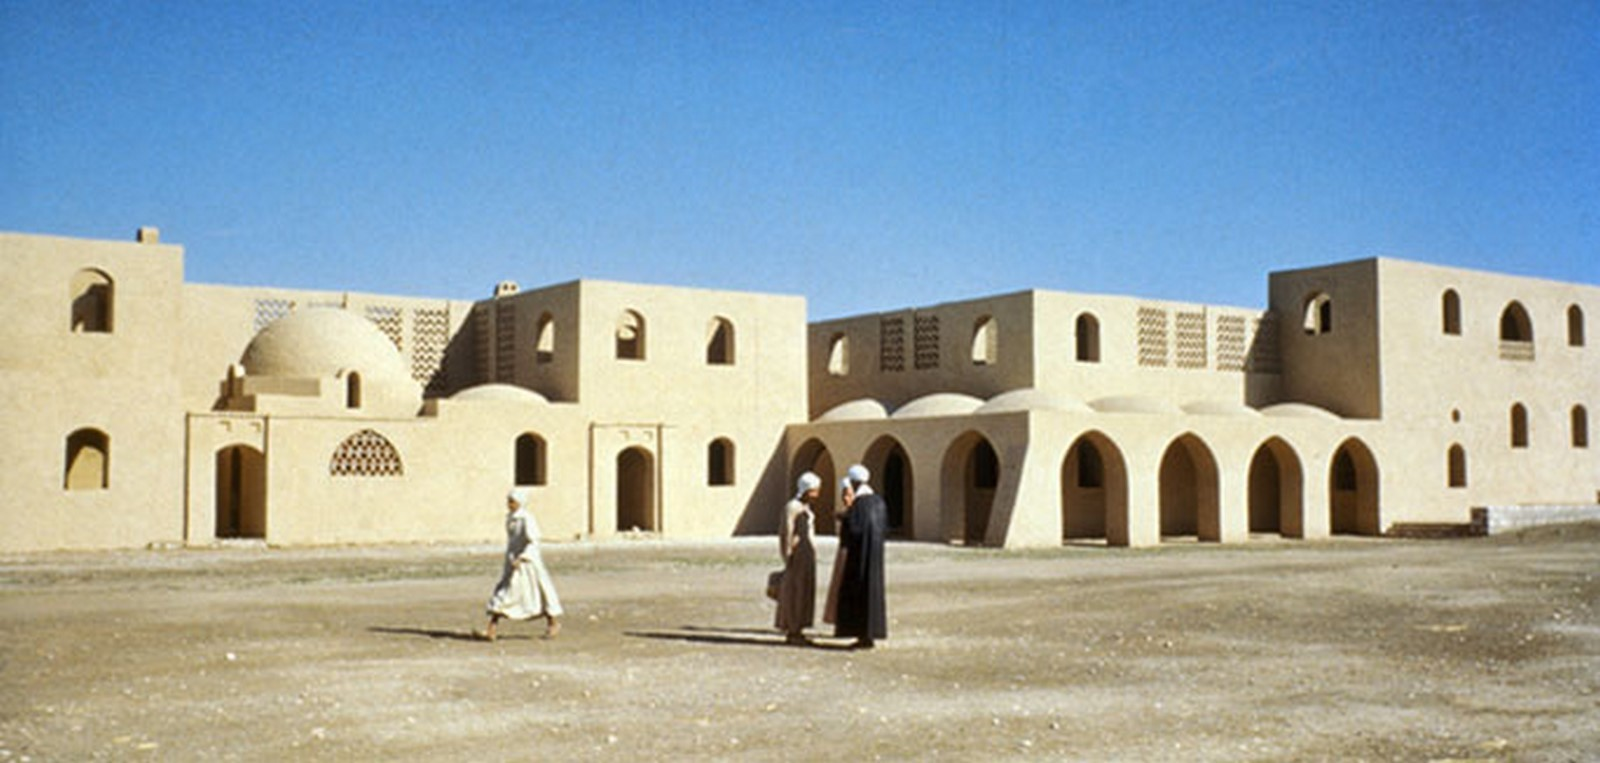 Hassan Fathy: Egypt's architect of the poor - Sheet3